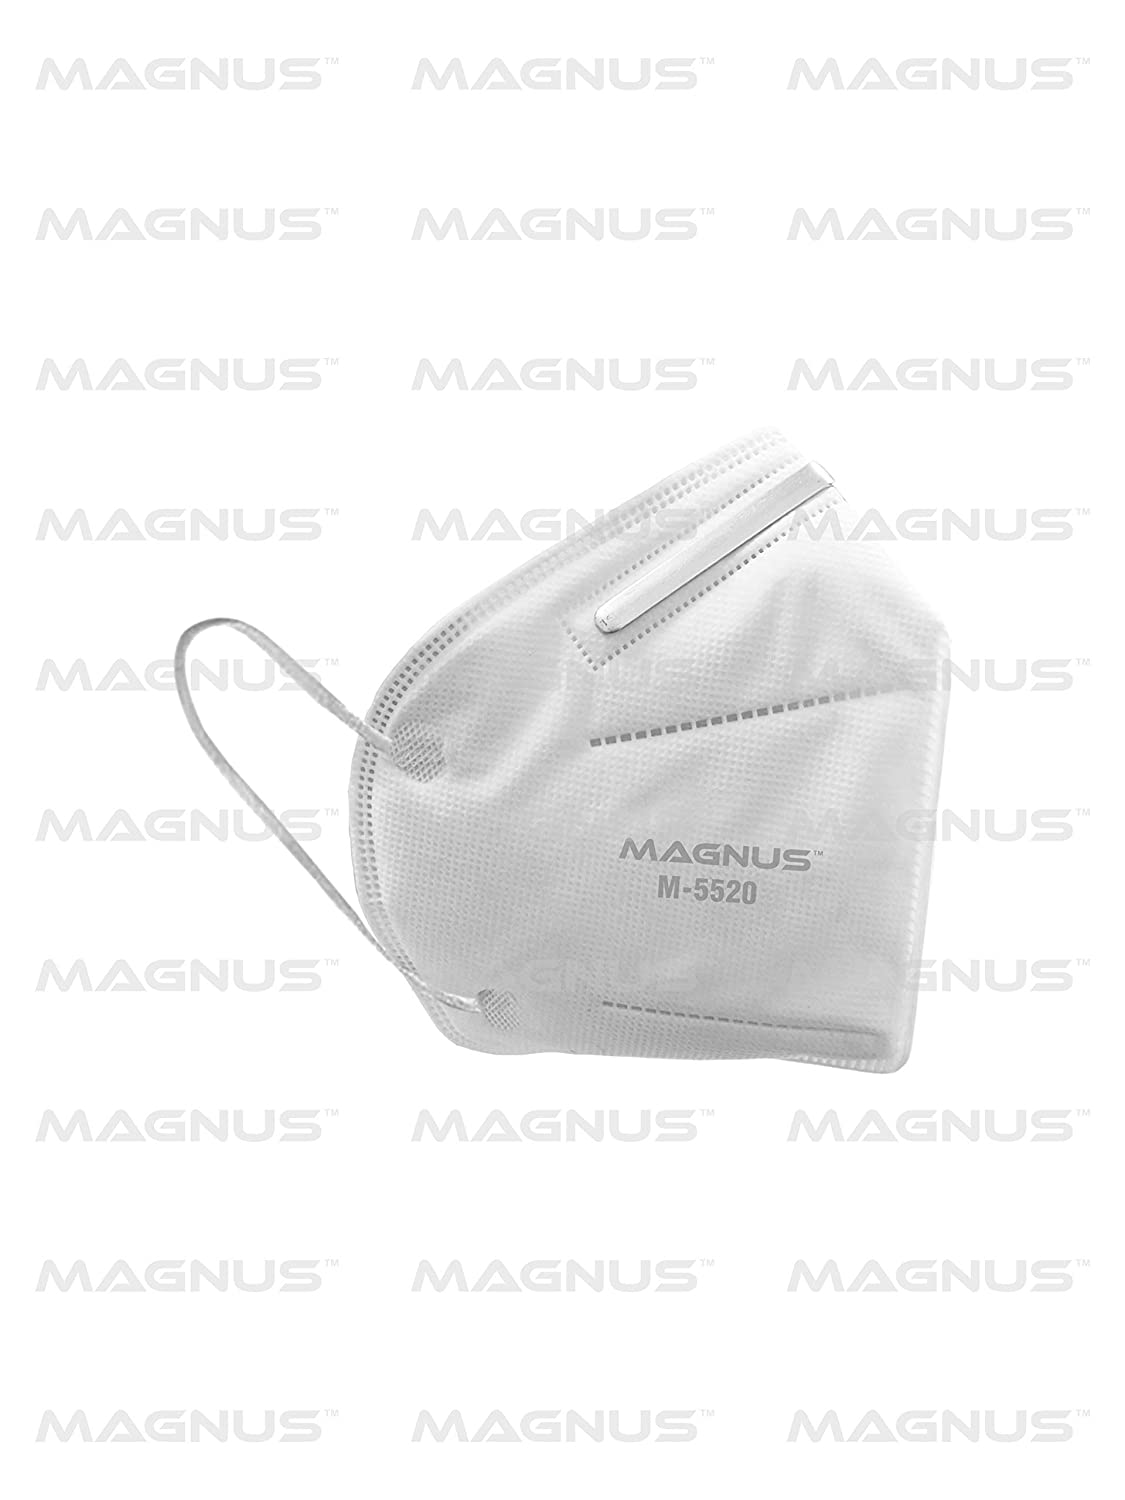 Magnus Non Woven M5520 Embedded Nose clip Super Saver Disposable Double Meltblown Filter Layer Face Masks White 2